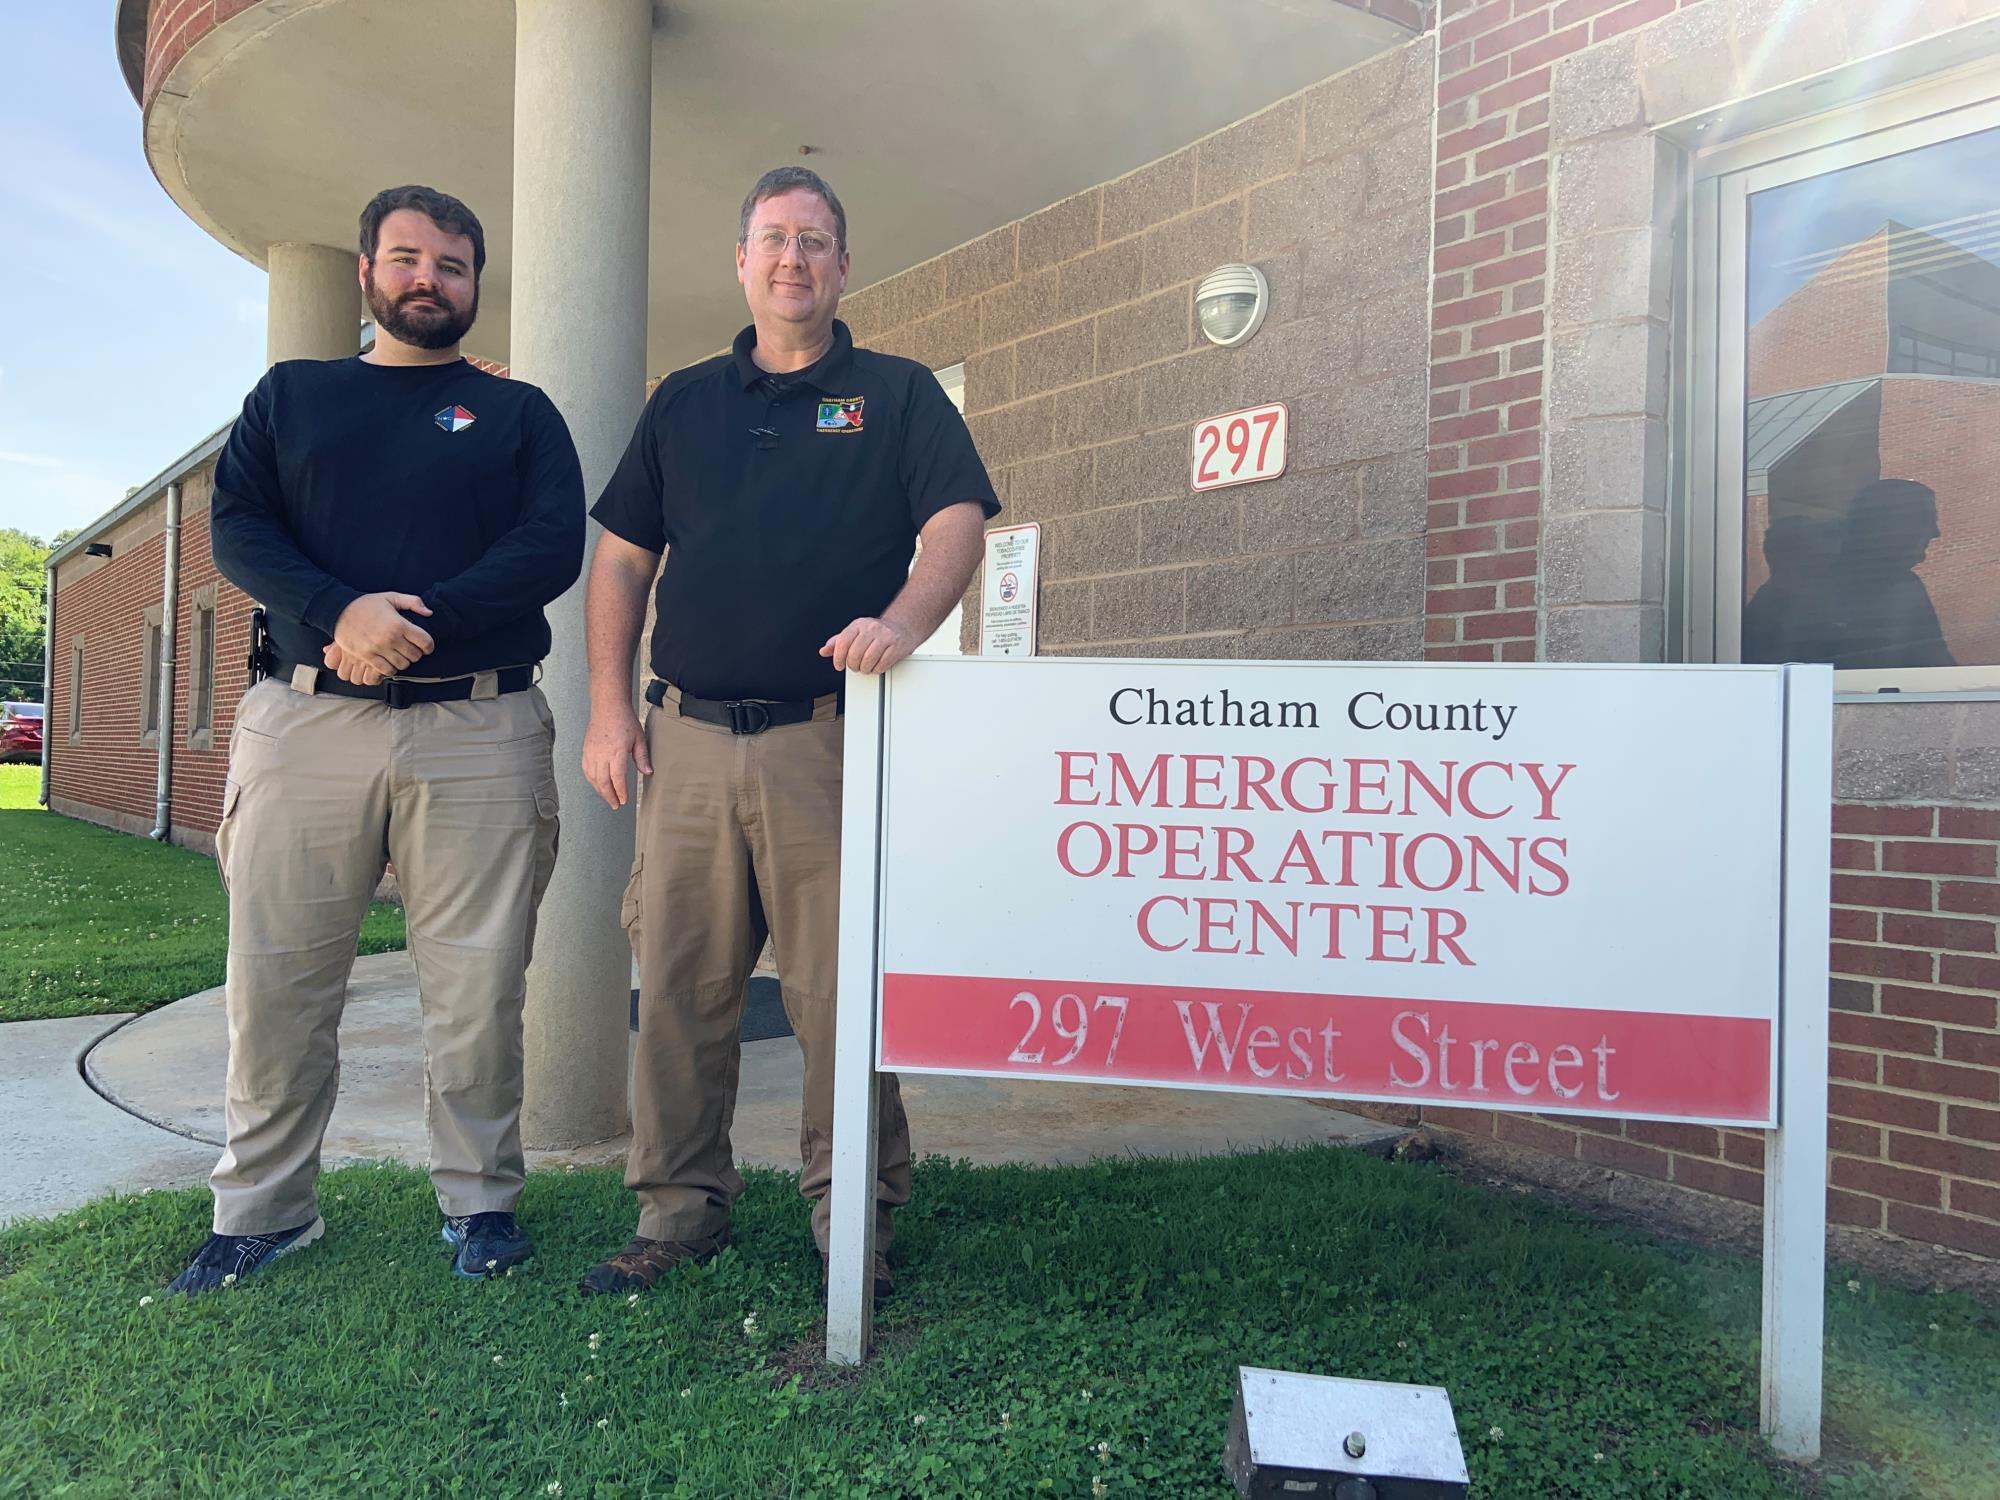 Chatham County Emergency Management